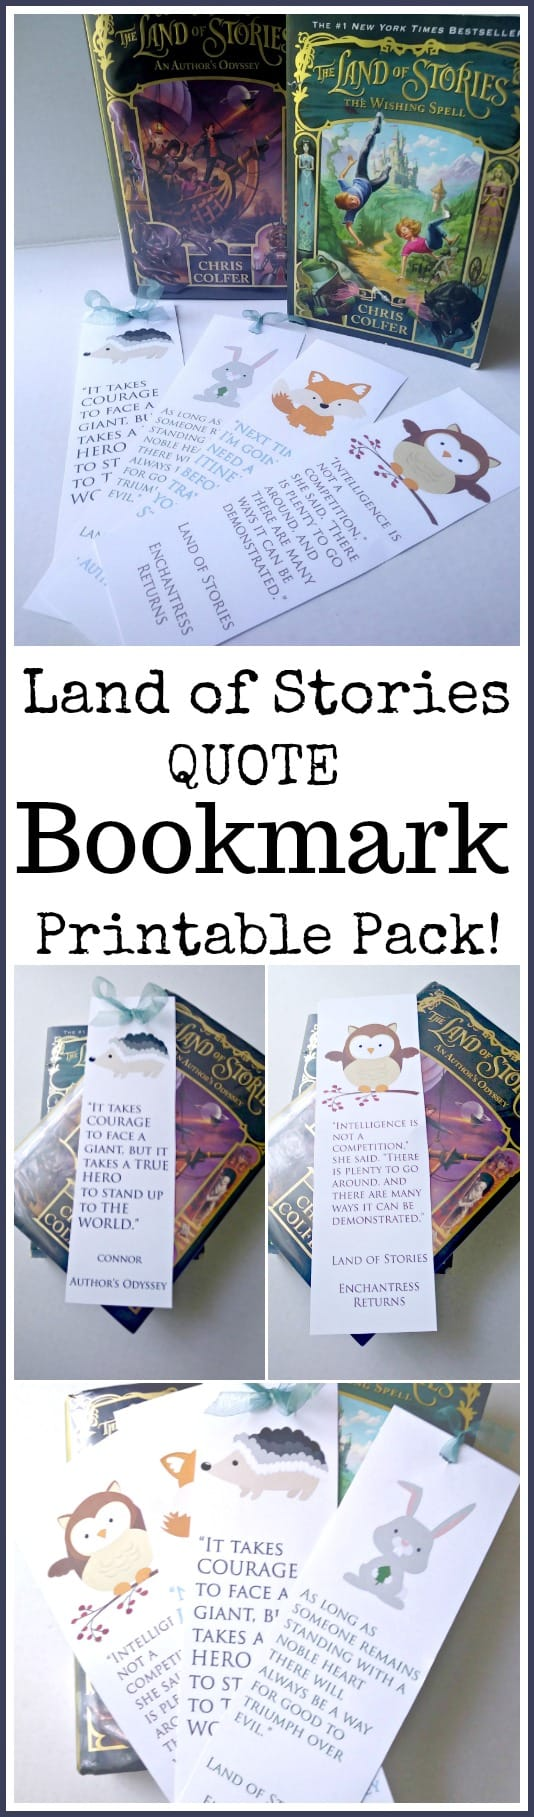 Land of Stories Quote Bookmark Printable Pack - #tlos #landofstories #booksmarks #freeprintable #quotes #reading #books #childrensbooks